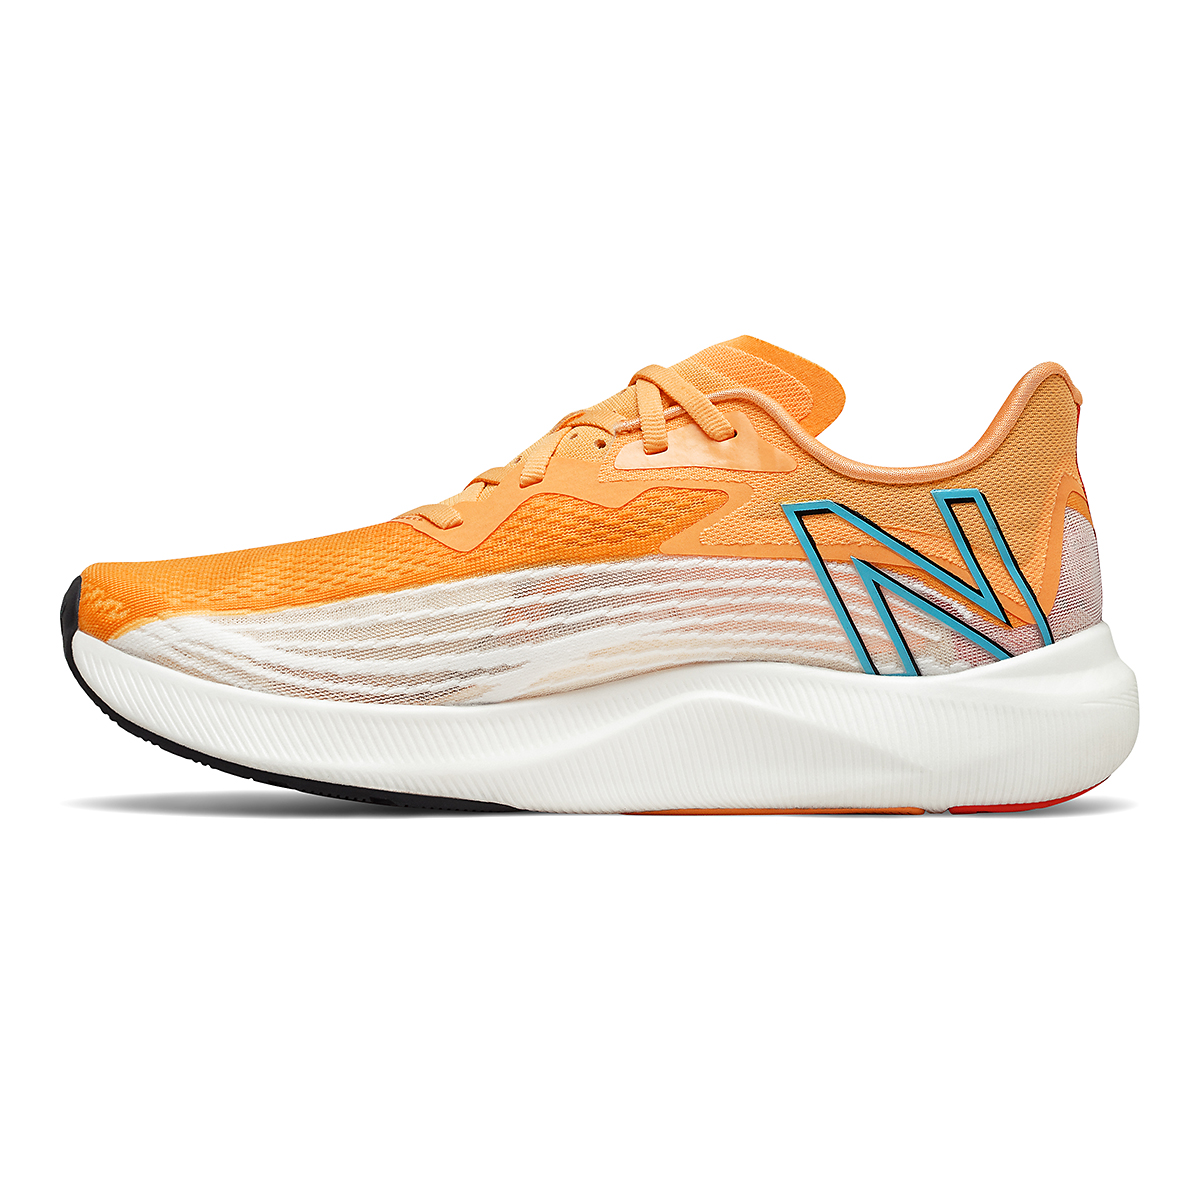 Men's New Balance Fuelcell Rebel V2 Running Shoe - Color: White/Habanero/Virtual Sky - Size: 11 - Width: Regular, White/Habanero/Virtual Sky, large, image 2